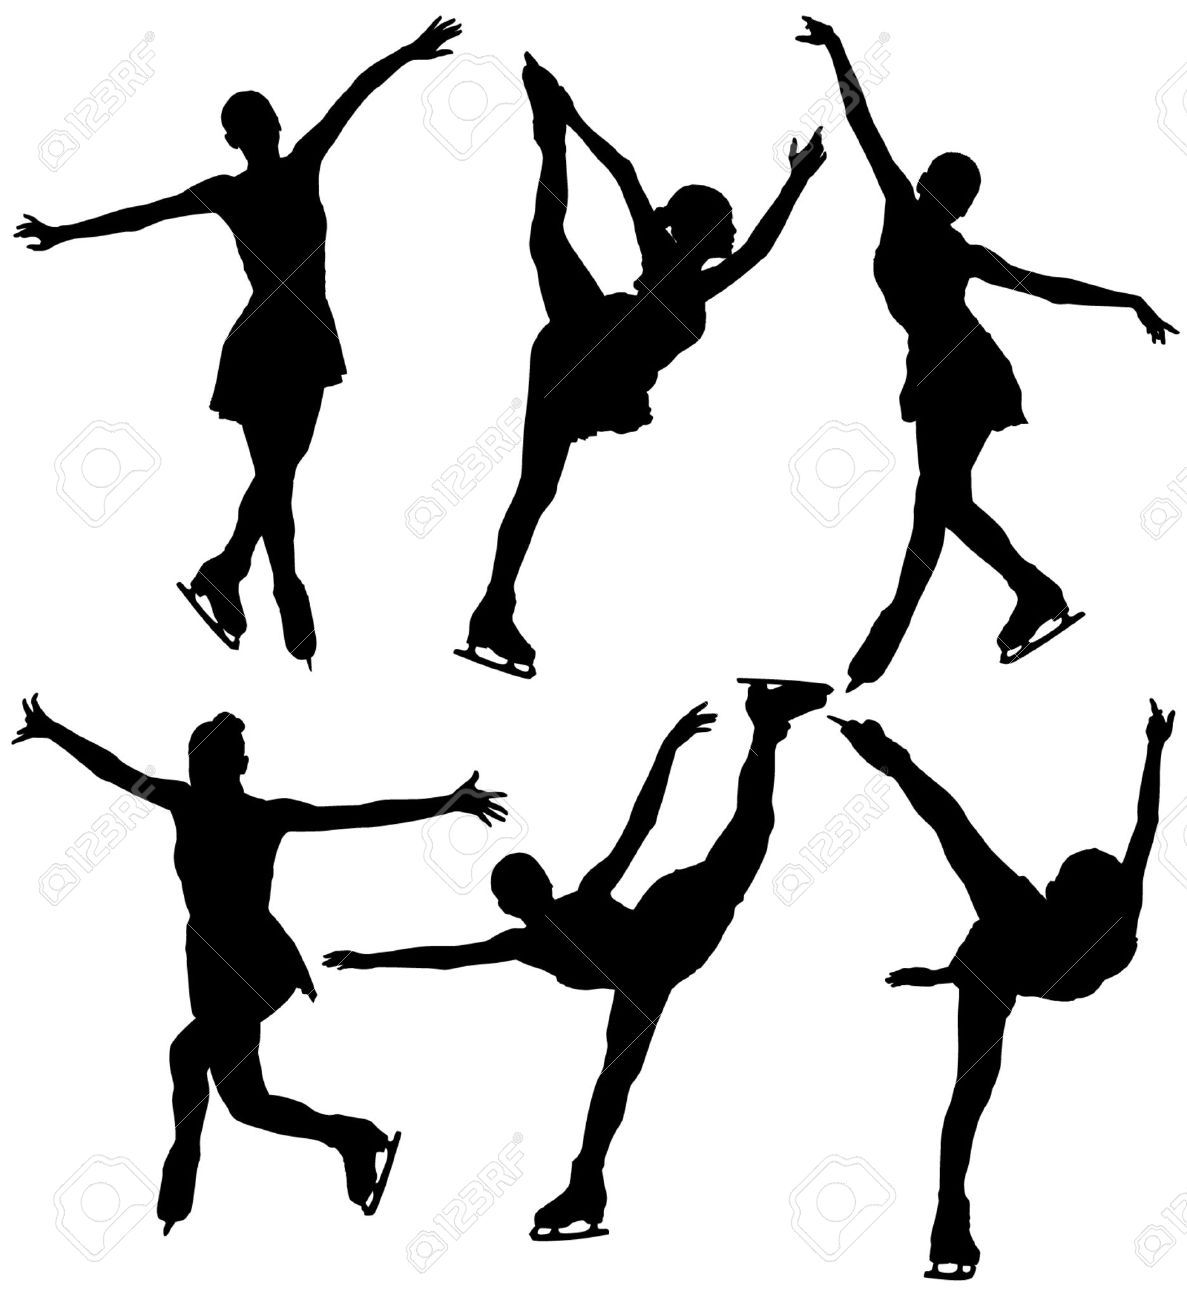 1187x1300 Ice Skating Silhouette On White Background Royalty Free Cliparts